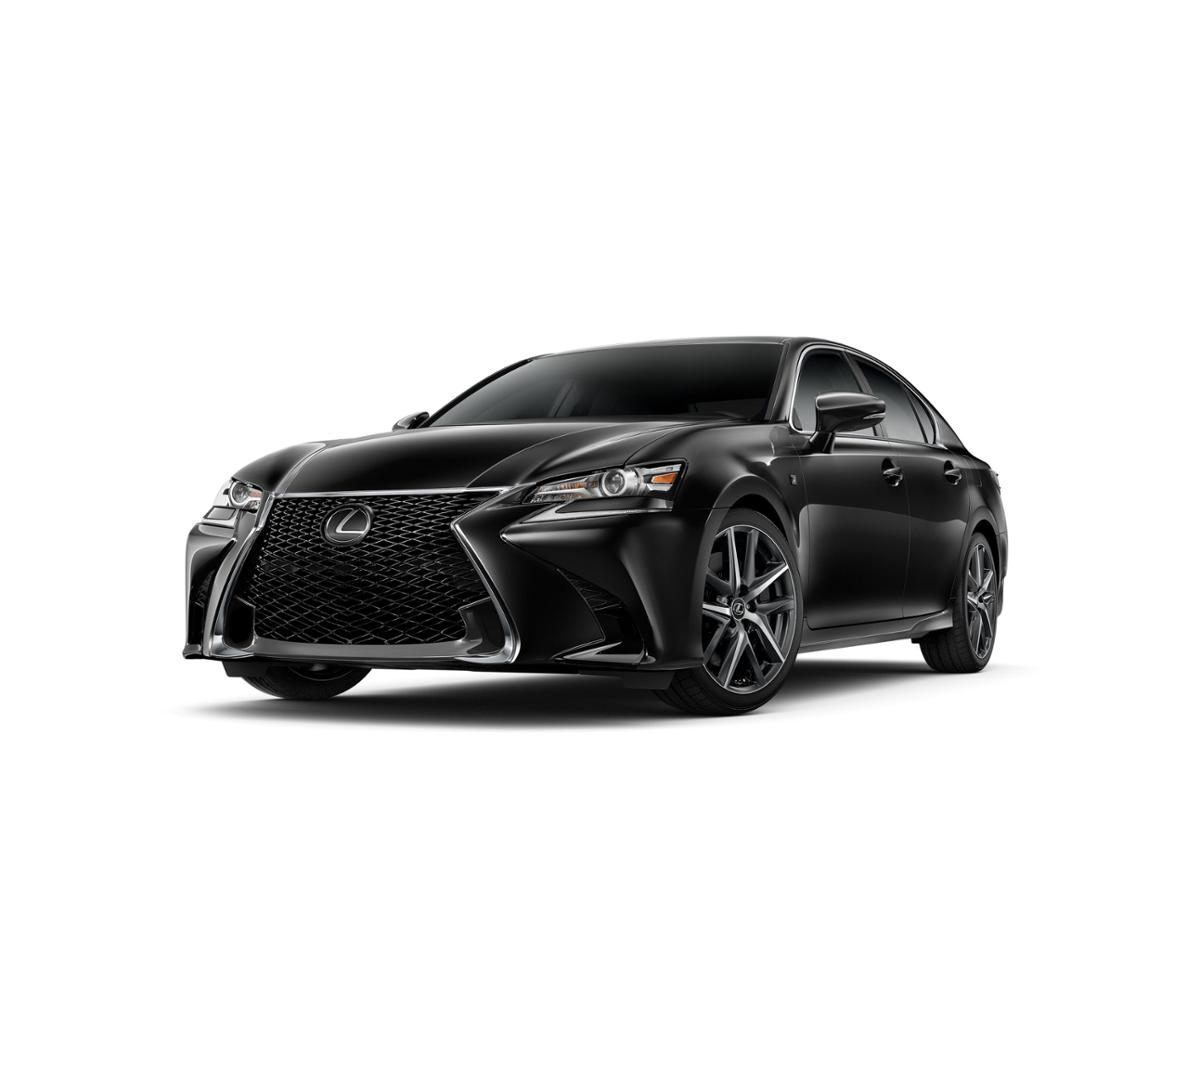 2018 Lexus GS 350 Vehicle Photo in Larchmont, NY 10538